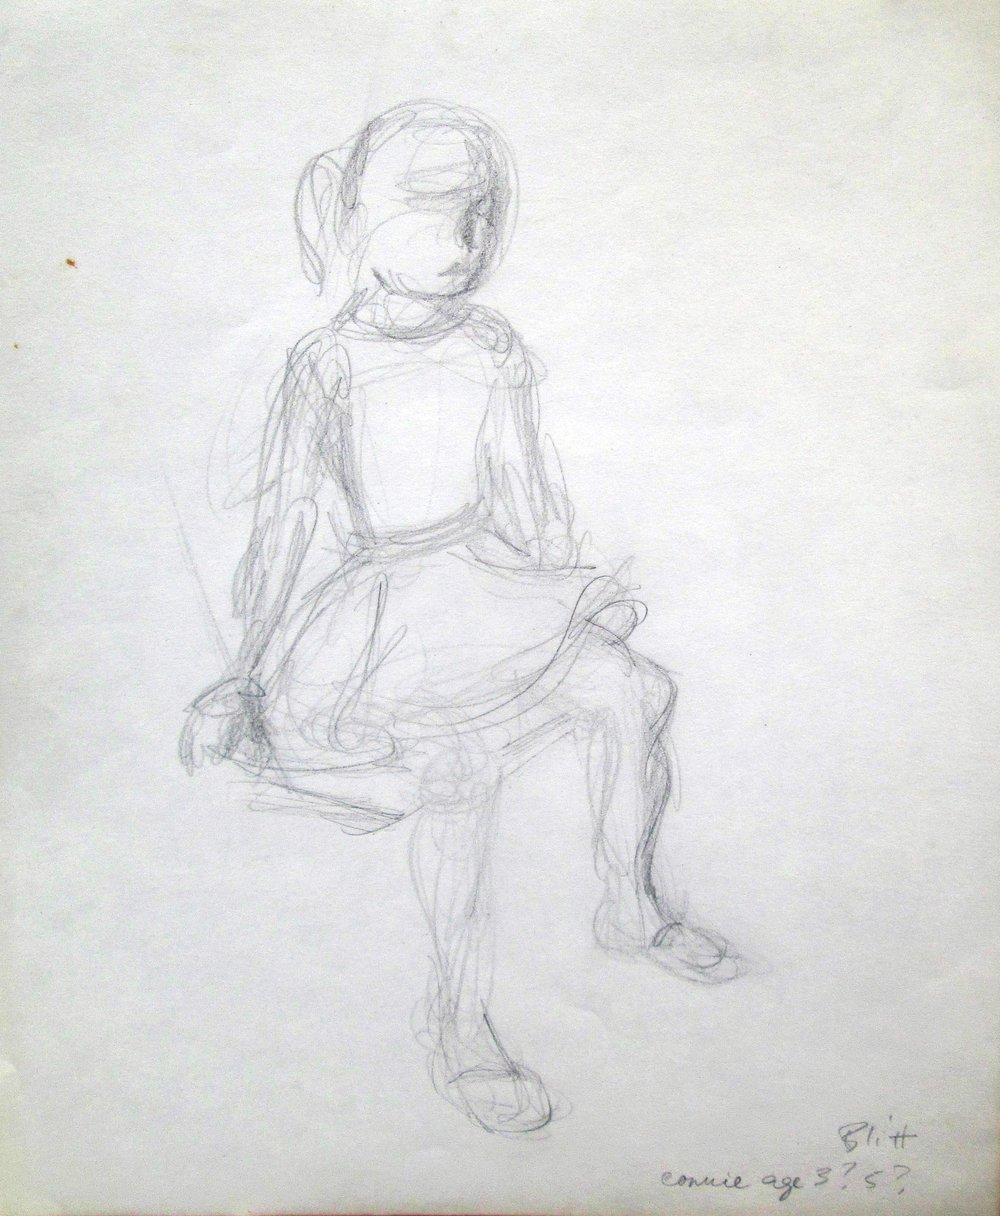 Connie Chela  1958, pencil on paper, 14x11 in